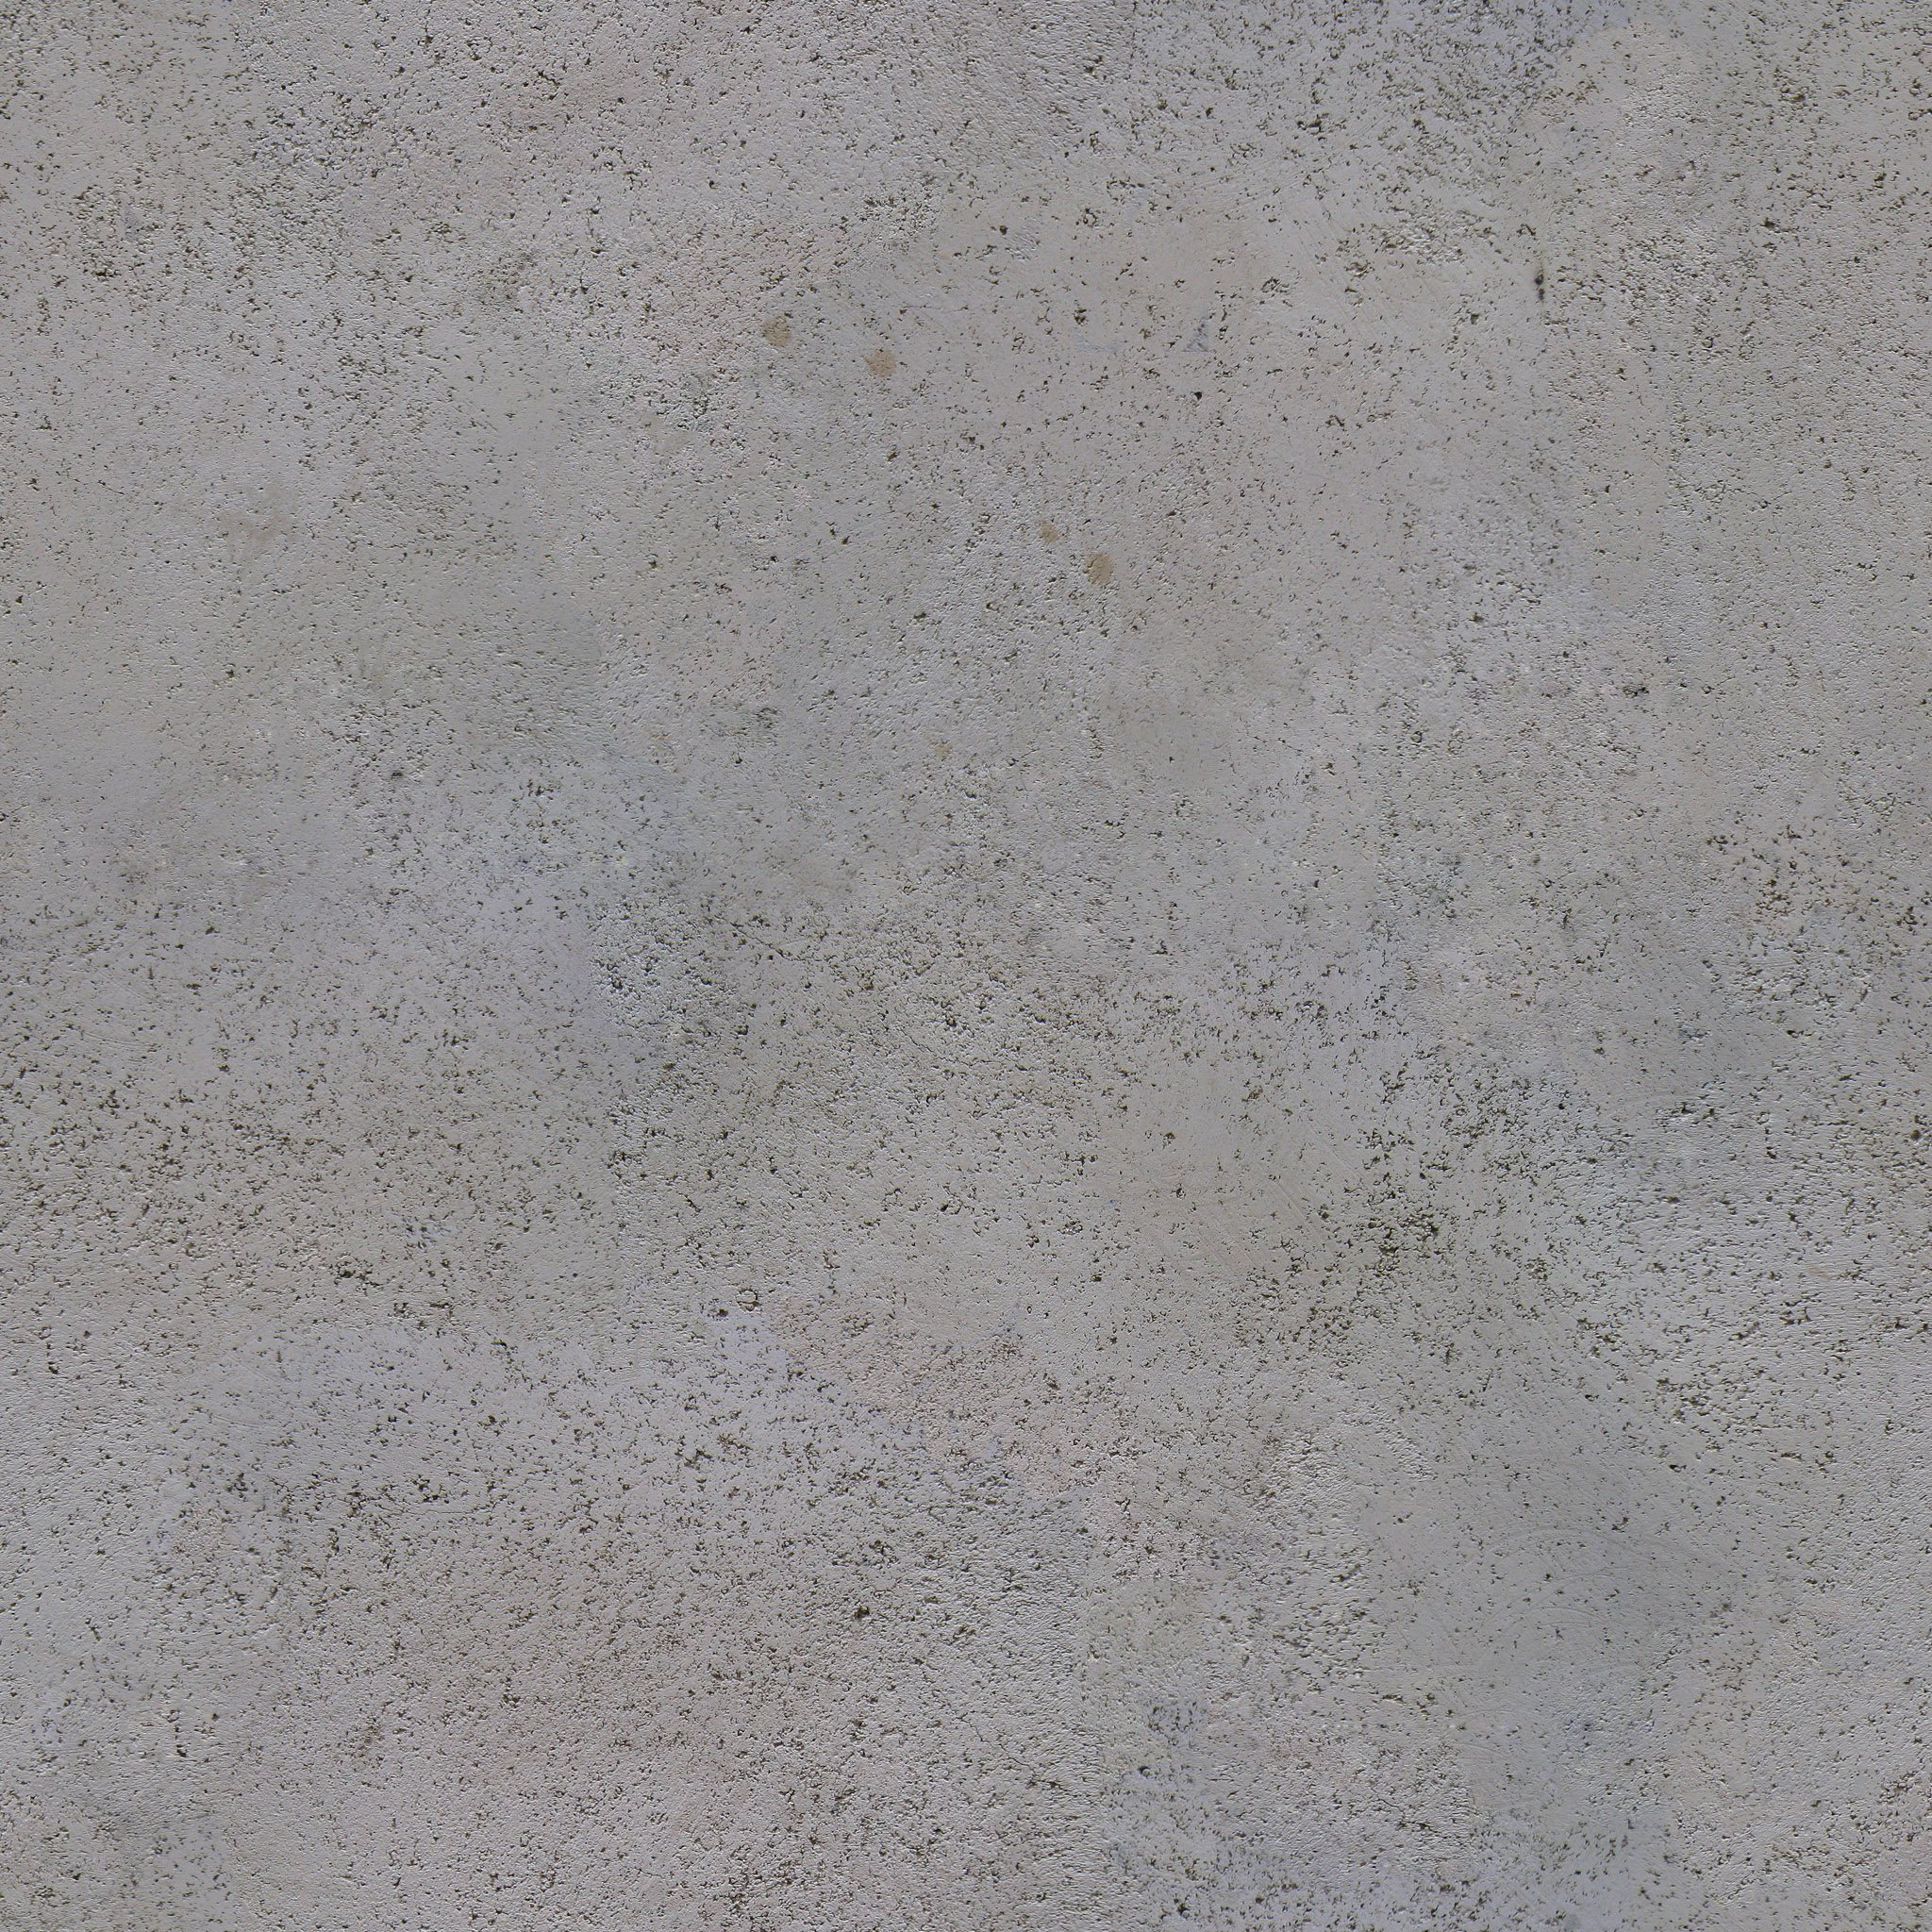 Smoothed Concrete Grey Holed Plaster Uv Cm 1 House In